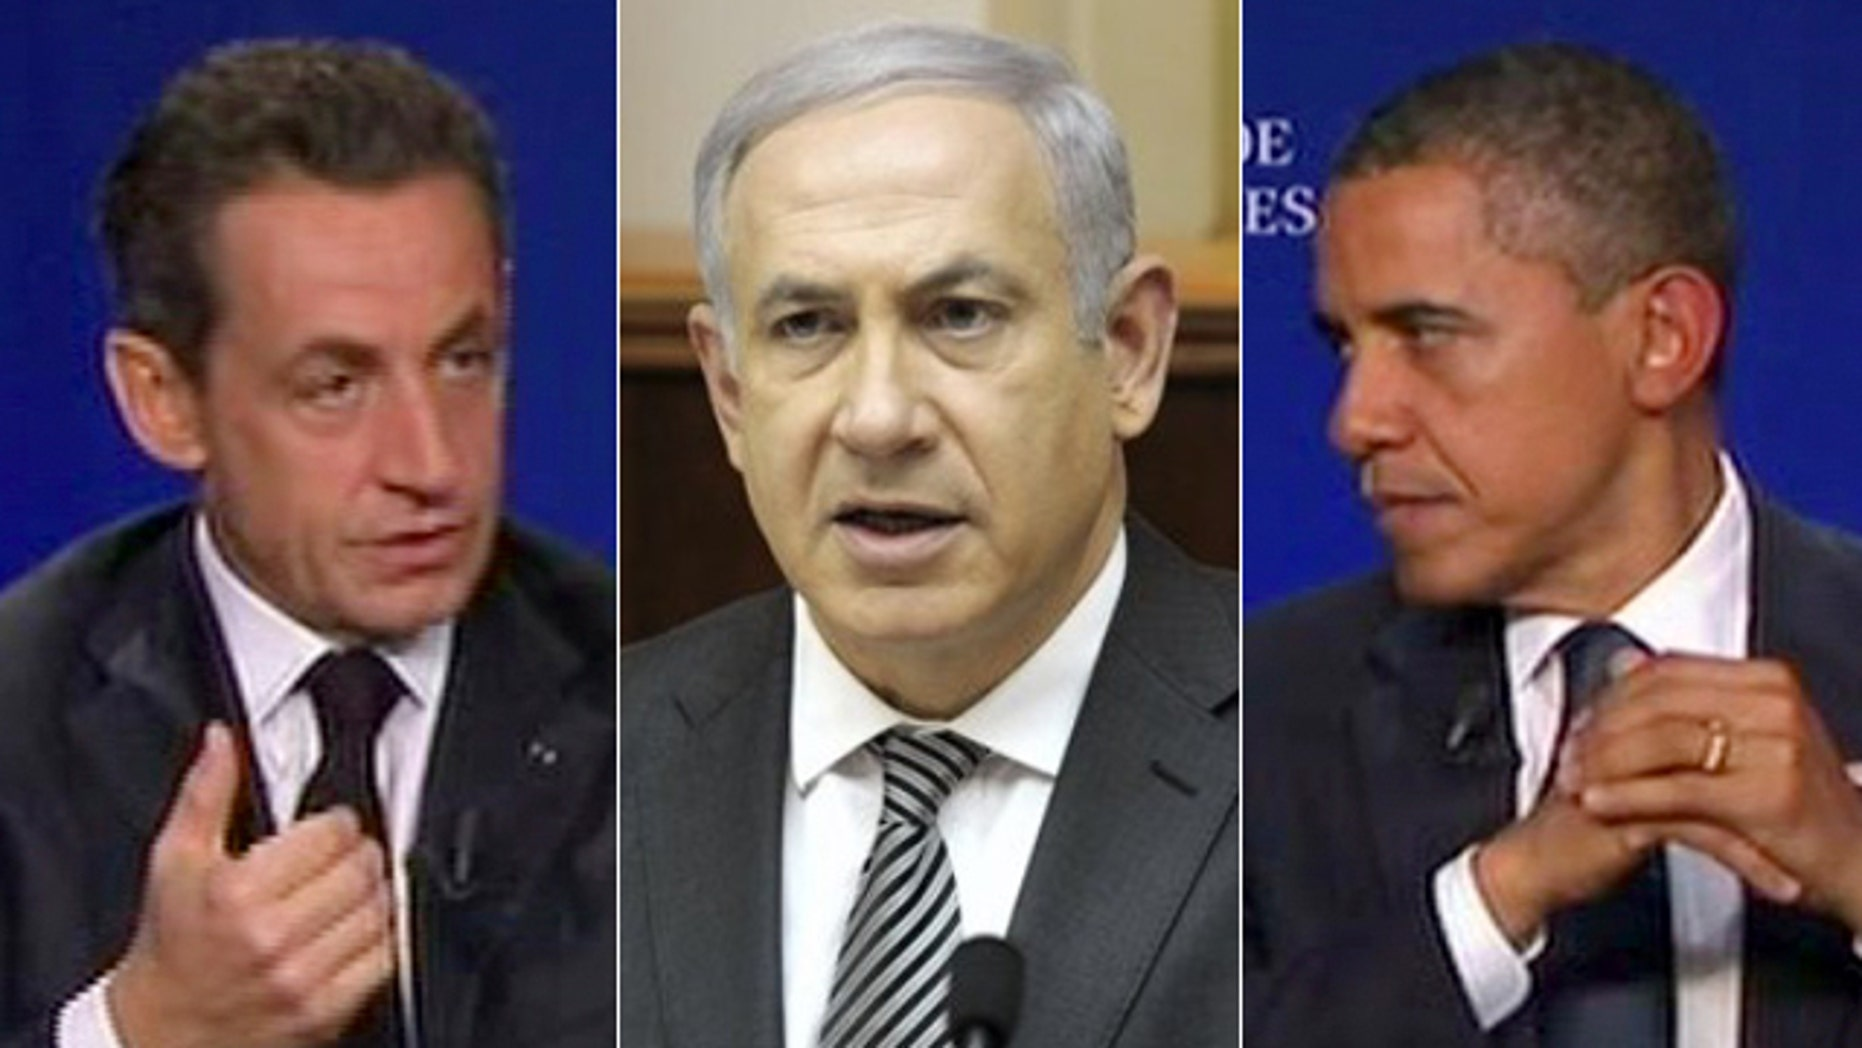 French President Nicolas Sarkozy, left, was overheard calling Israeli Prime Minister Benjamin Netanyahu, center, a 'liar' in a converation with U.S. President Obama last week during the G20 summit.